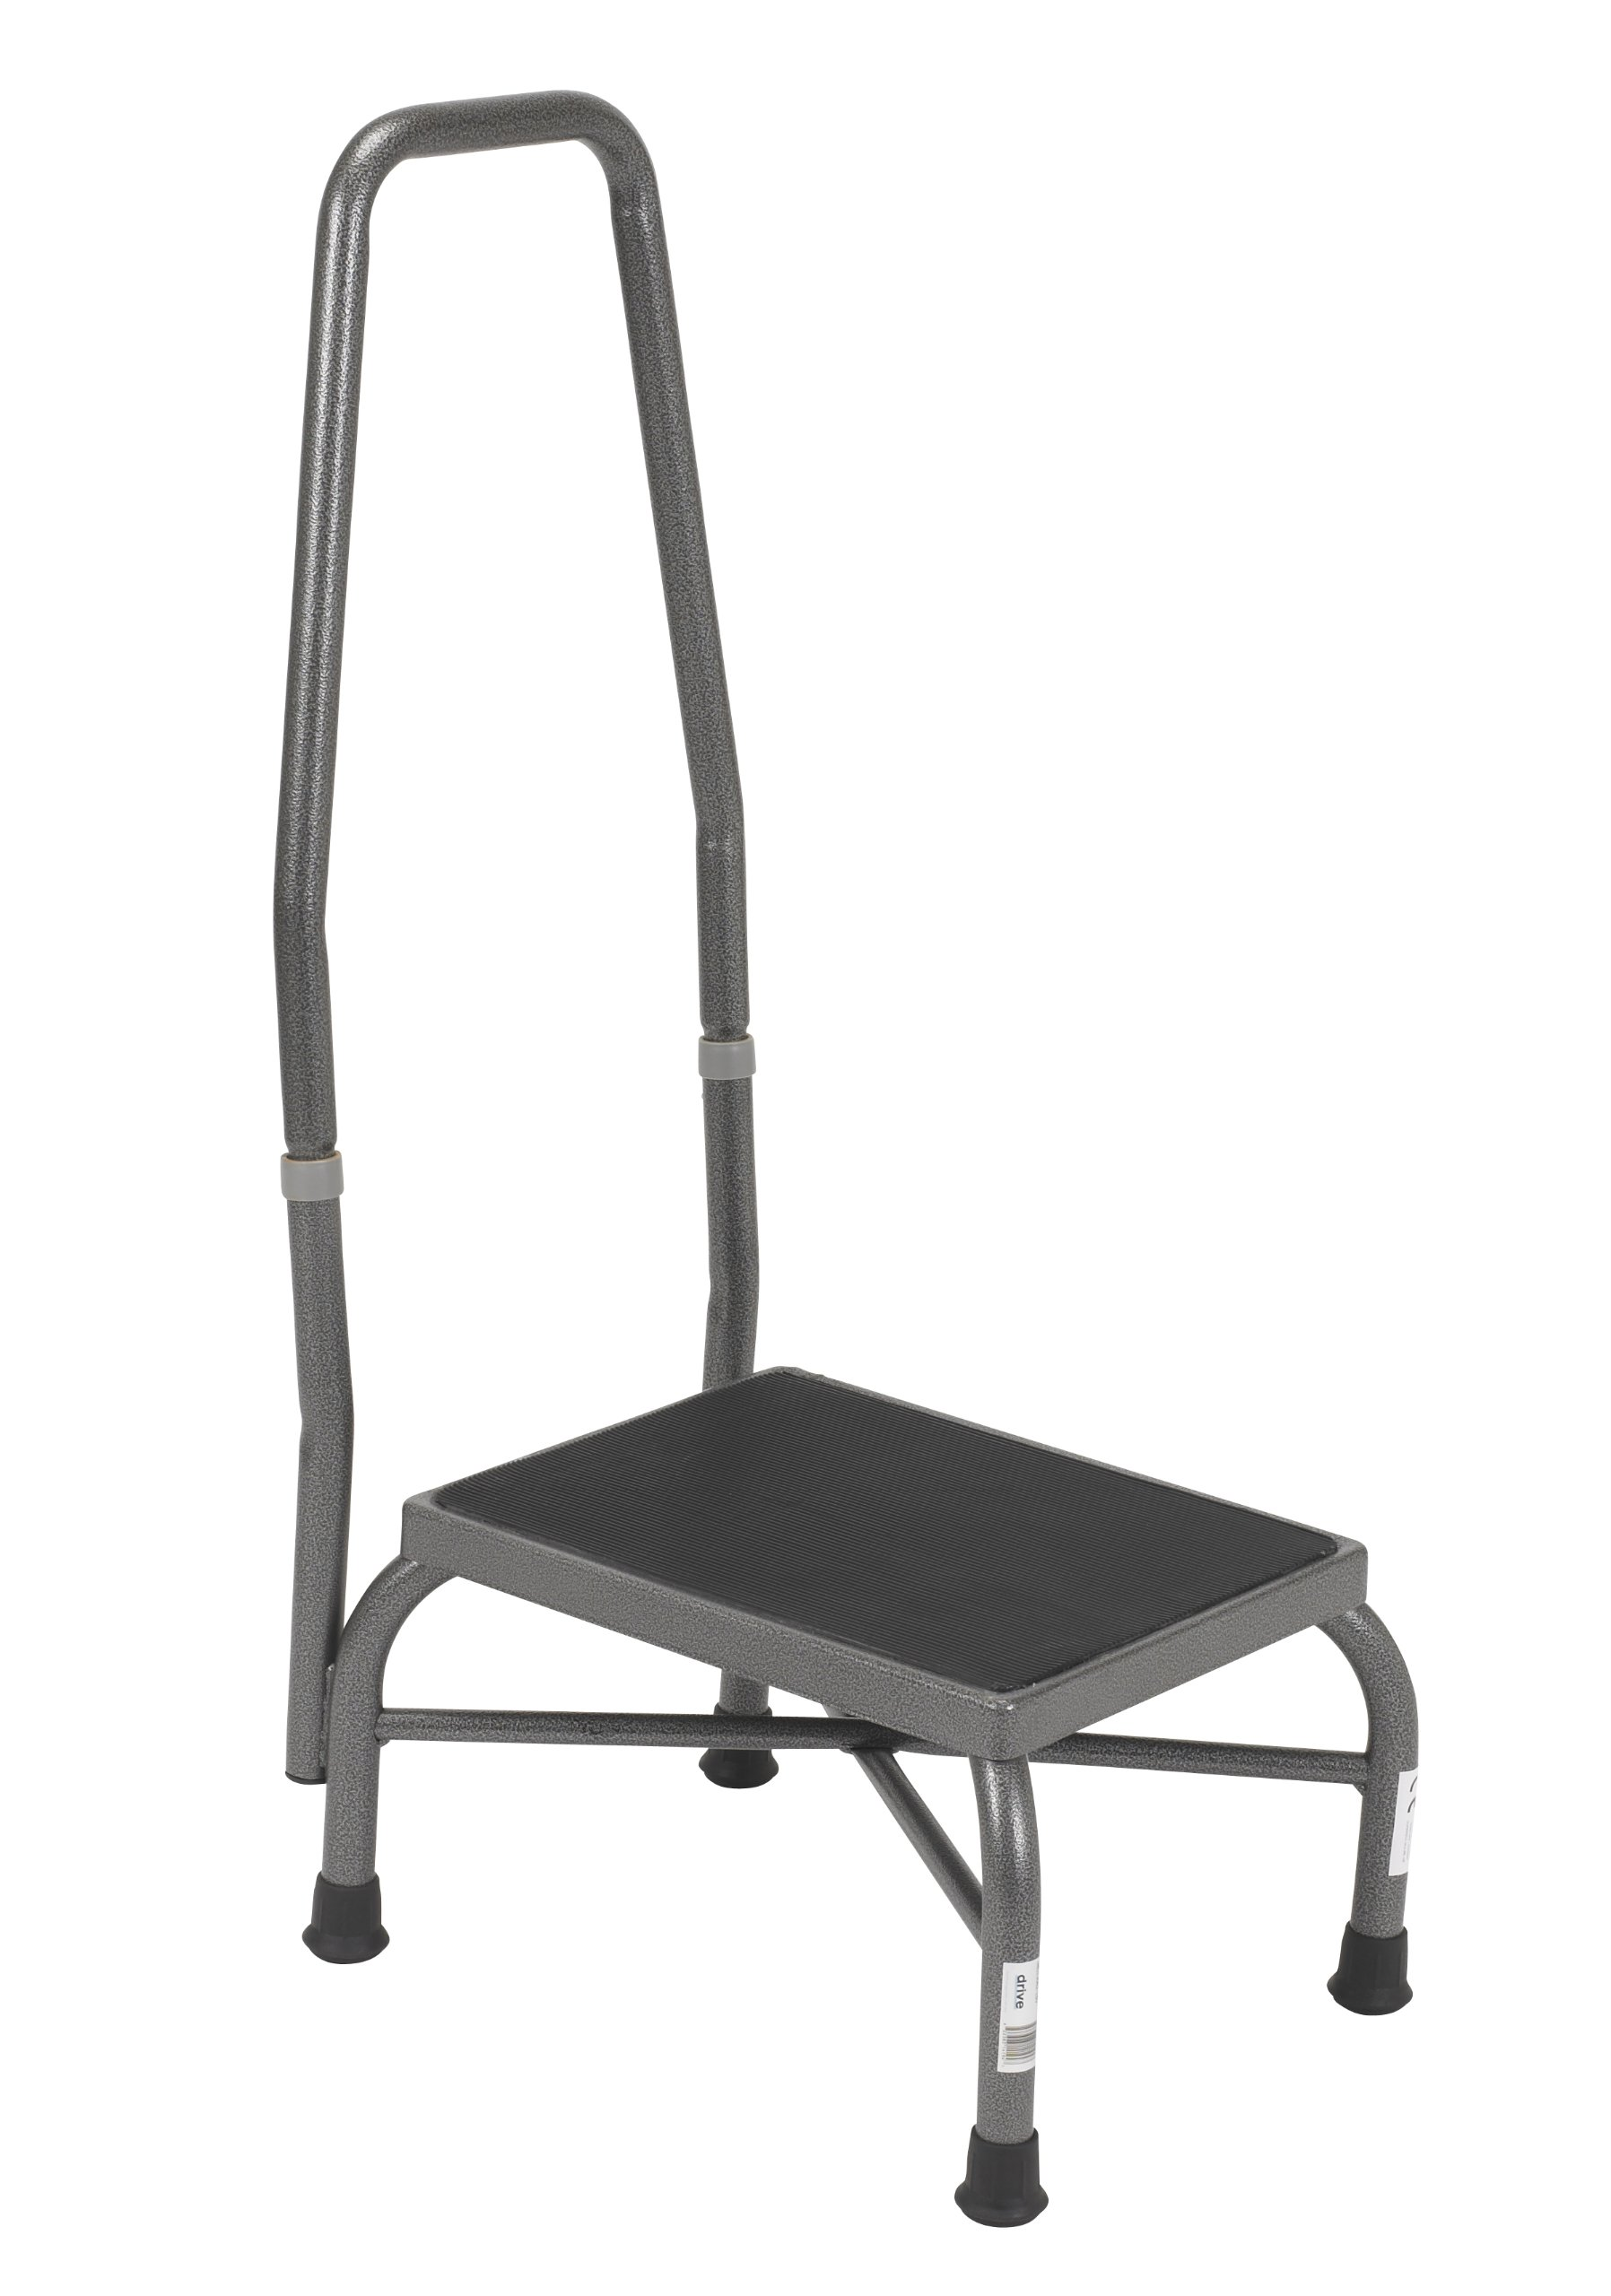 Drive Medical Heavy Duty Bariatric Footstool with Handrail and Non Skid Rubber Platform, Silver Vein by Drive Medical